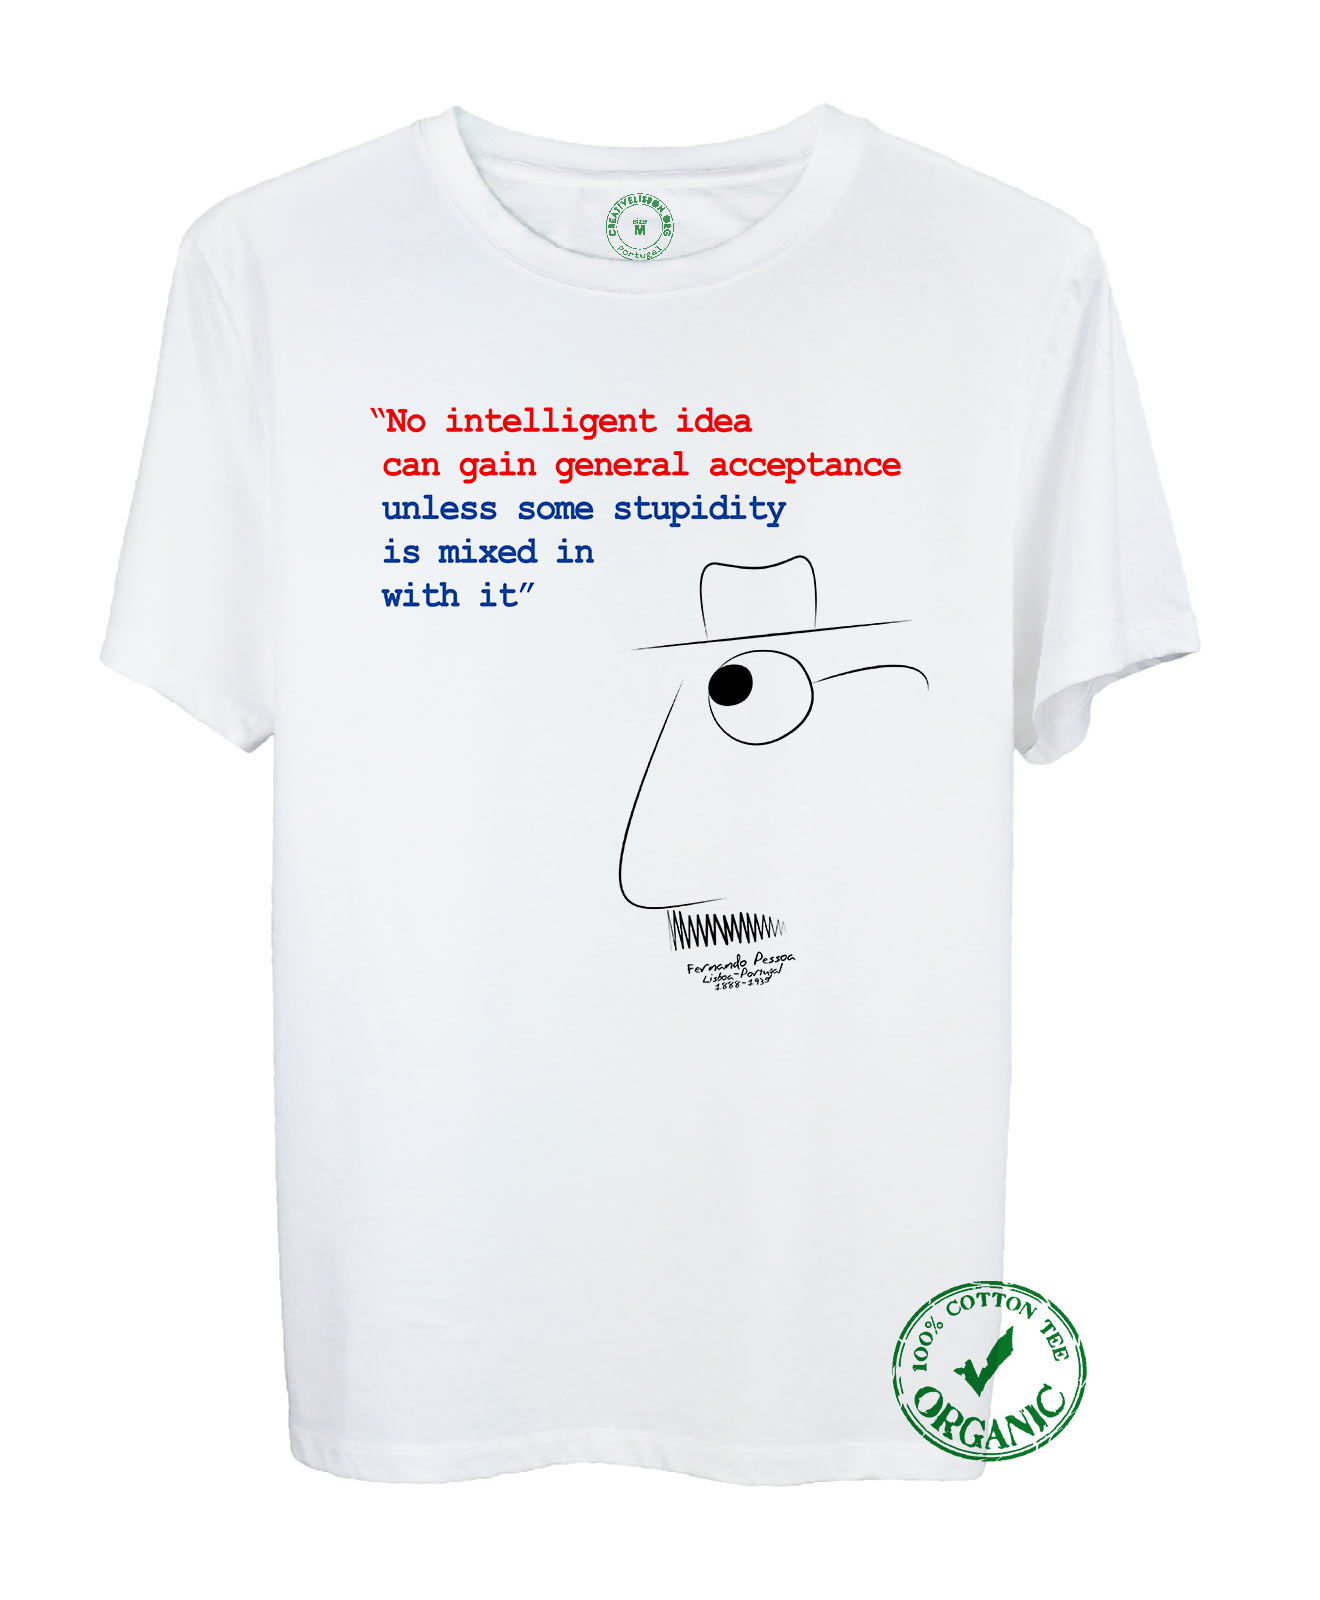 Idea Organic Cotton Tee with quote and the poet cartoon